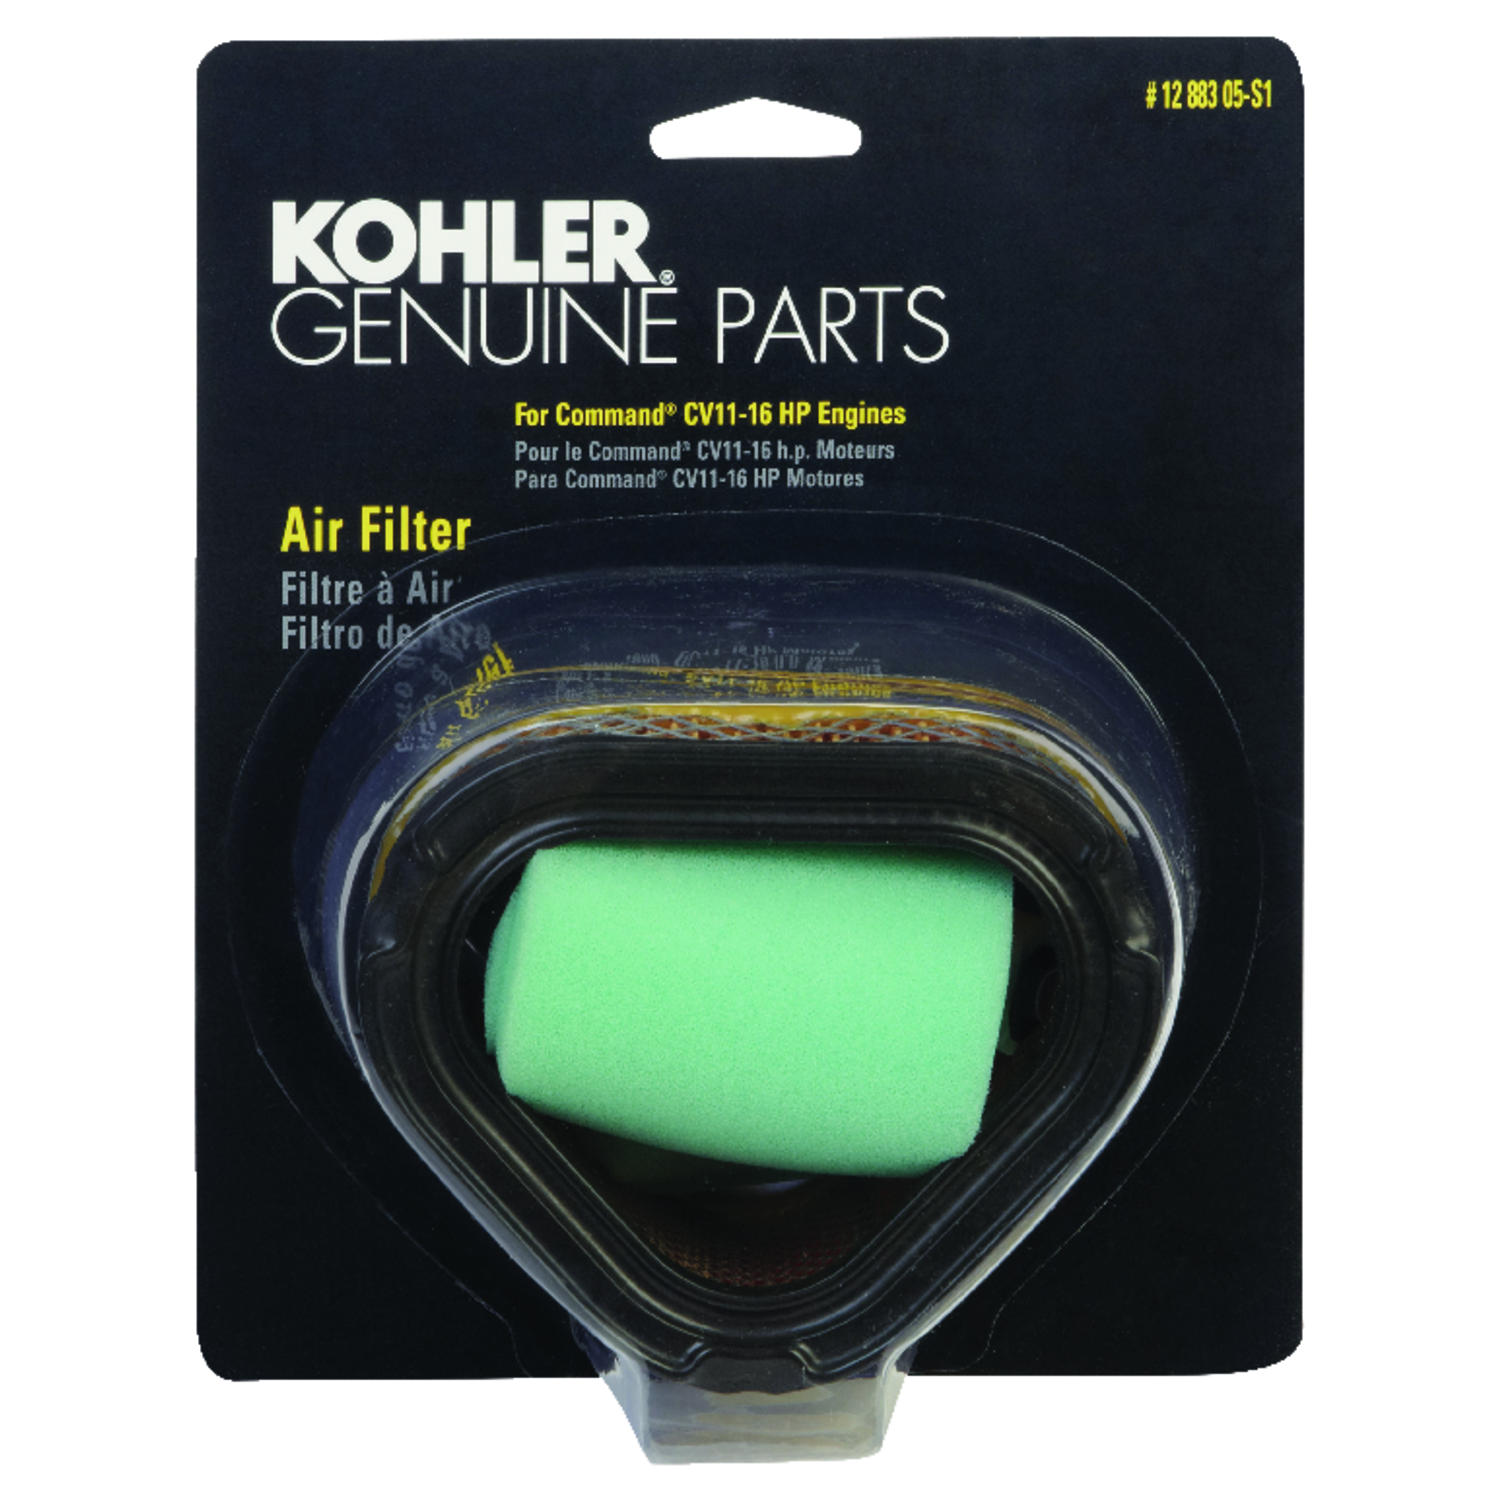 Kohler Small Engine Air Filter For CV11-16 - Ace Hardware